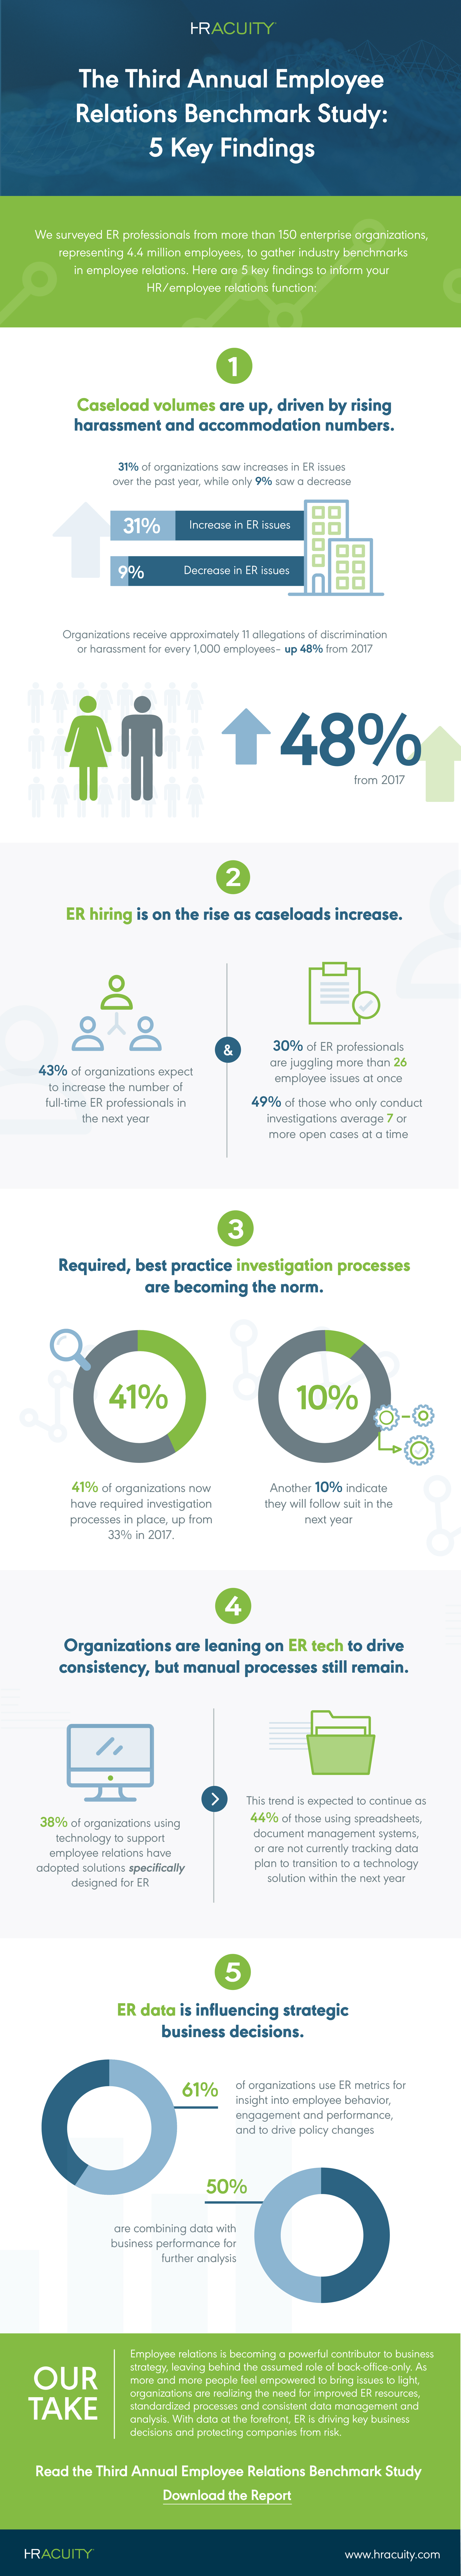 HR Acuity Infographic